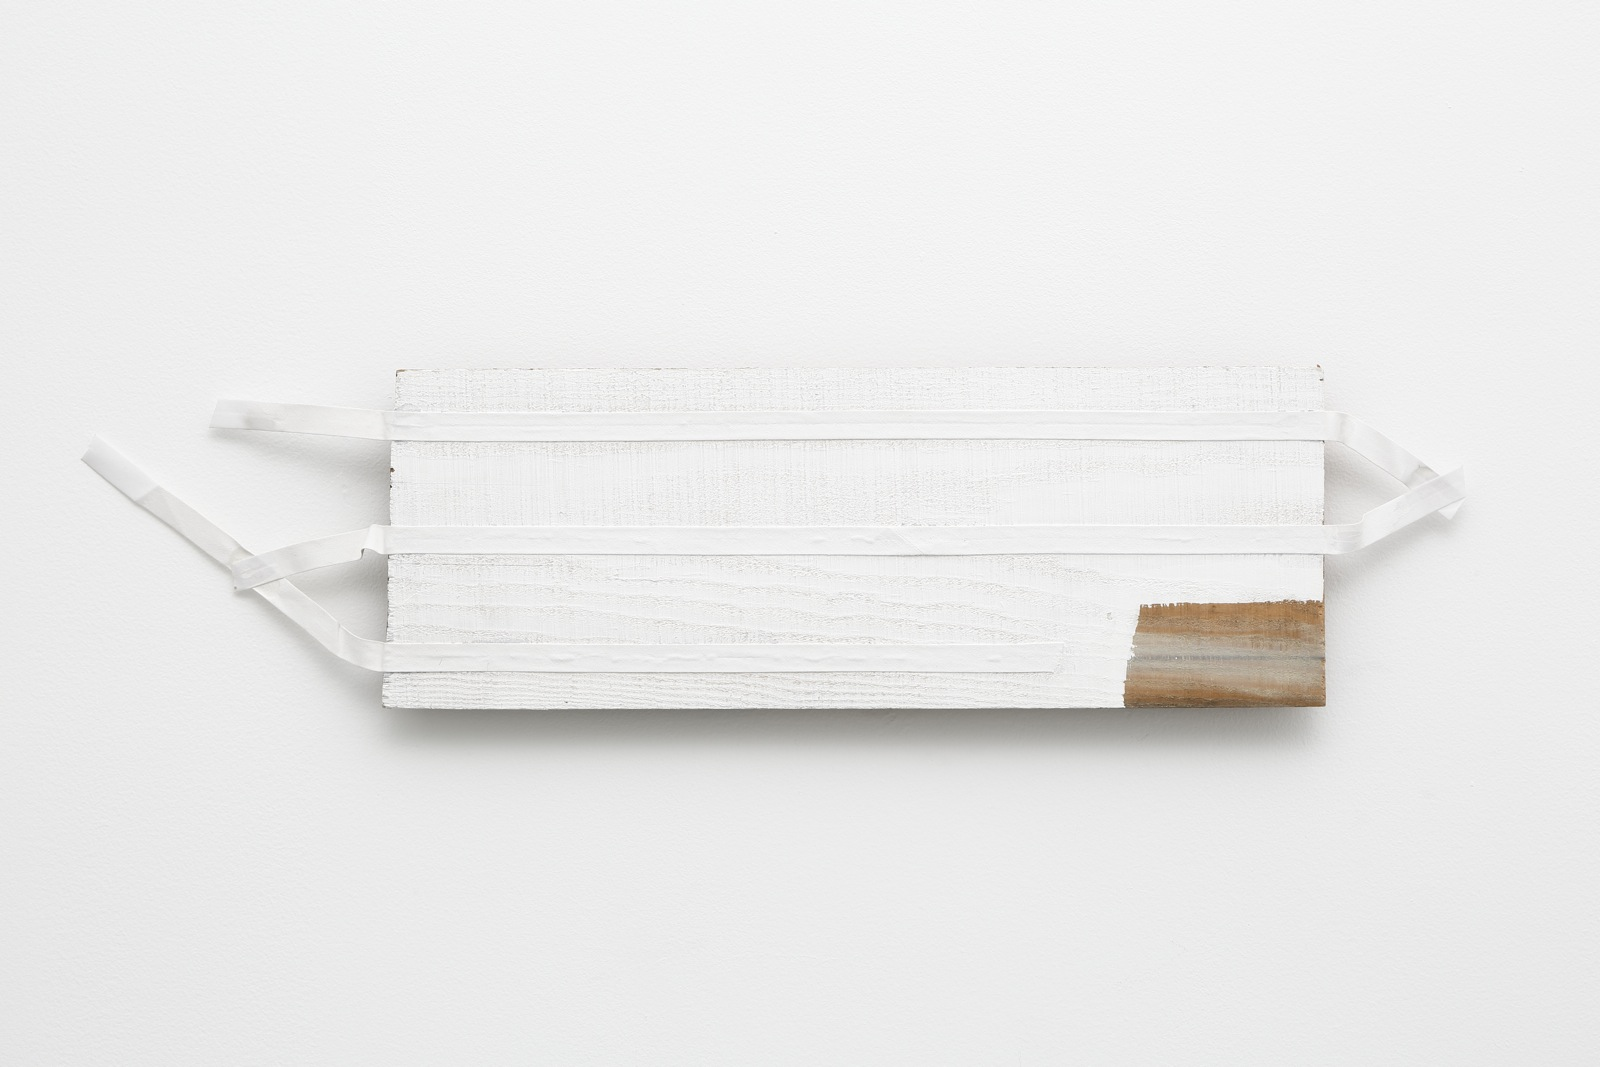 Extremities in Transition , 1985 過端 ( Katan ) Plywood, canvas, white paint 5 3/4 x 23 5/8 x 3/4 inches  14.5 x 60 x 2 centimeters